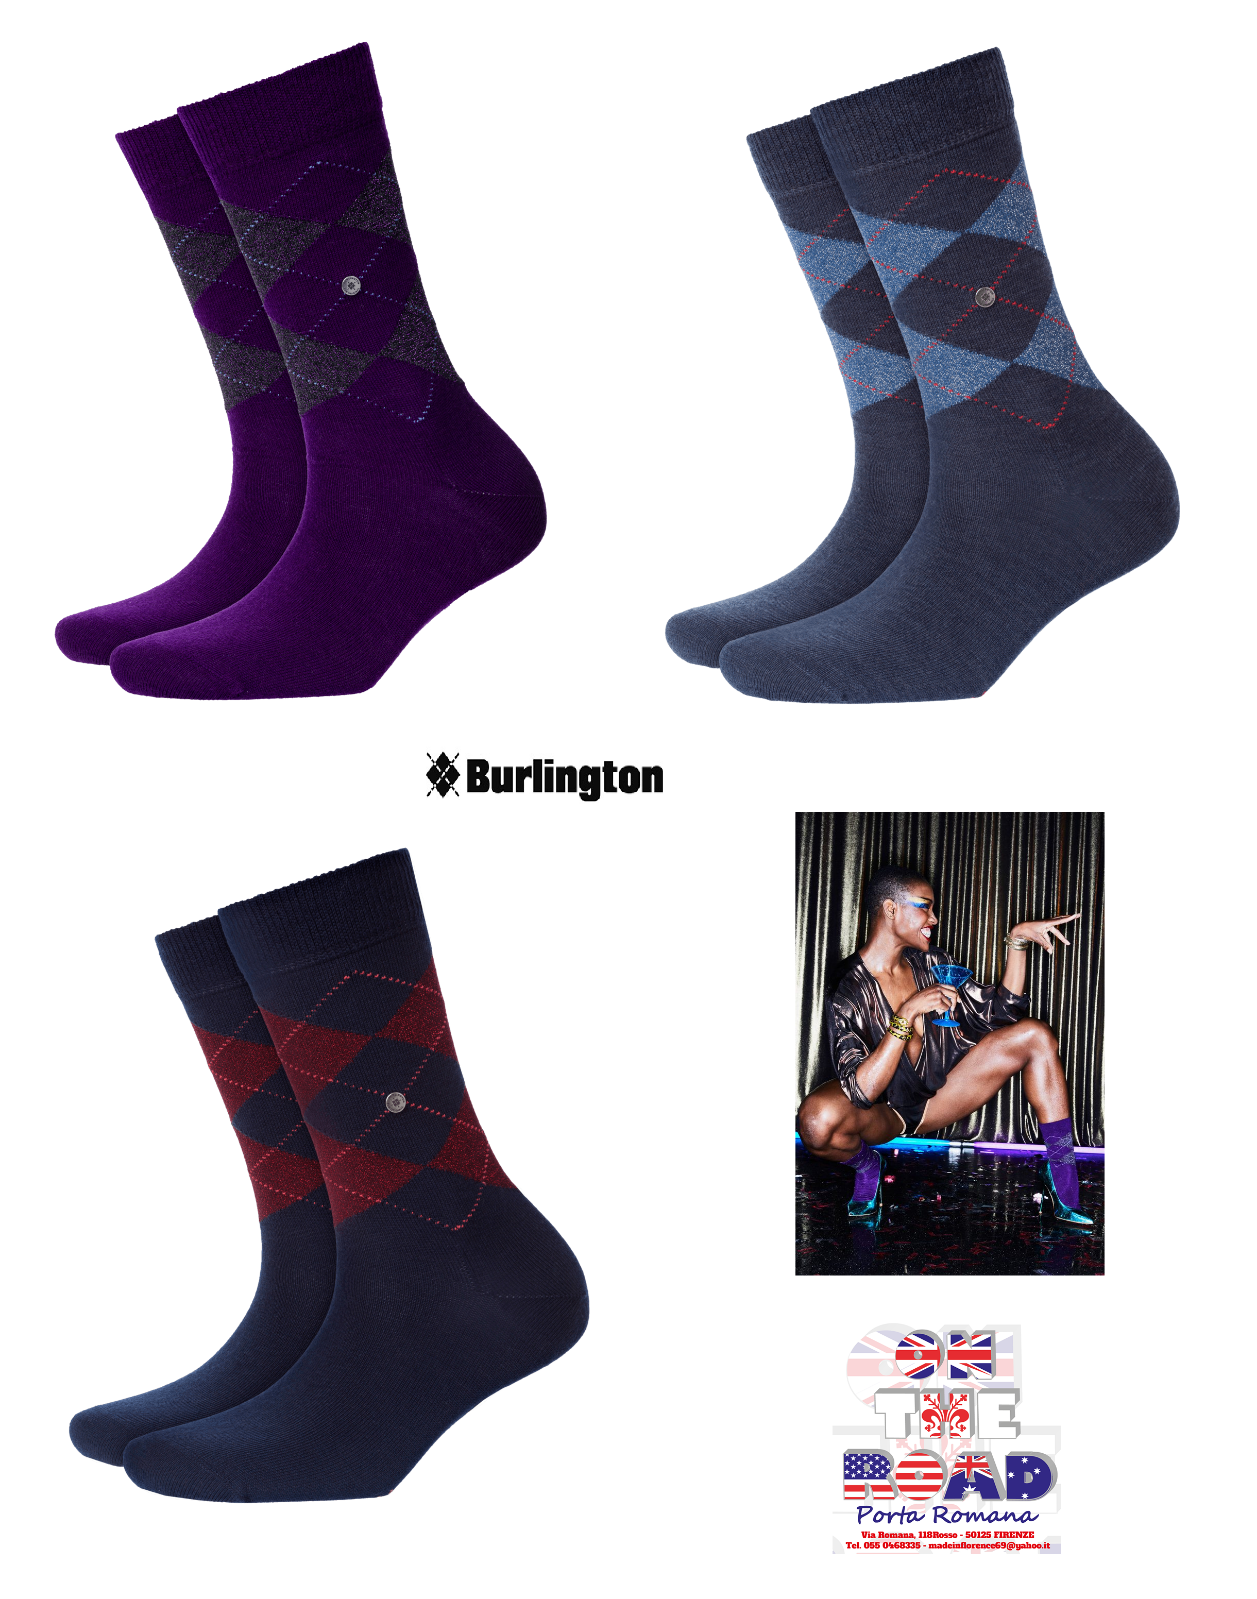 BURLINGTON SOCKS LUREX MARYLEBONE 22182 CALZINO CORTO DONNA 36/41 CALZE ROMBI